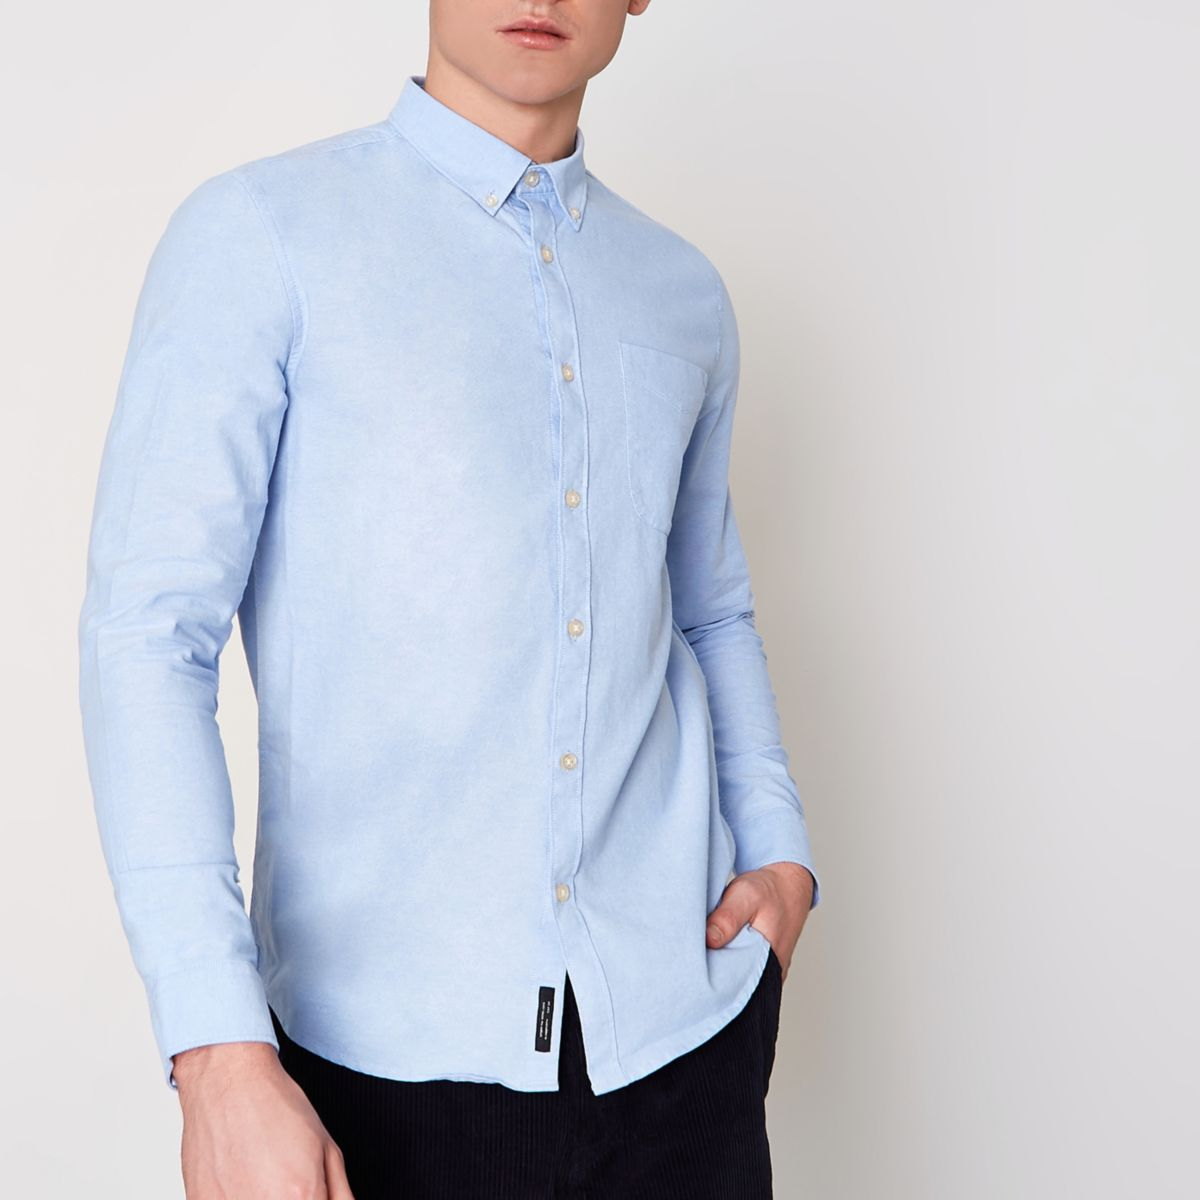 Light blue button-down Oxford shirt